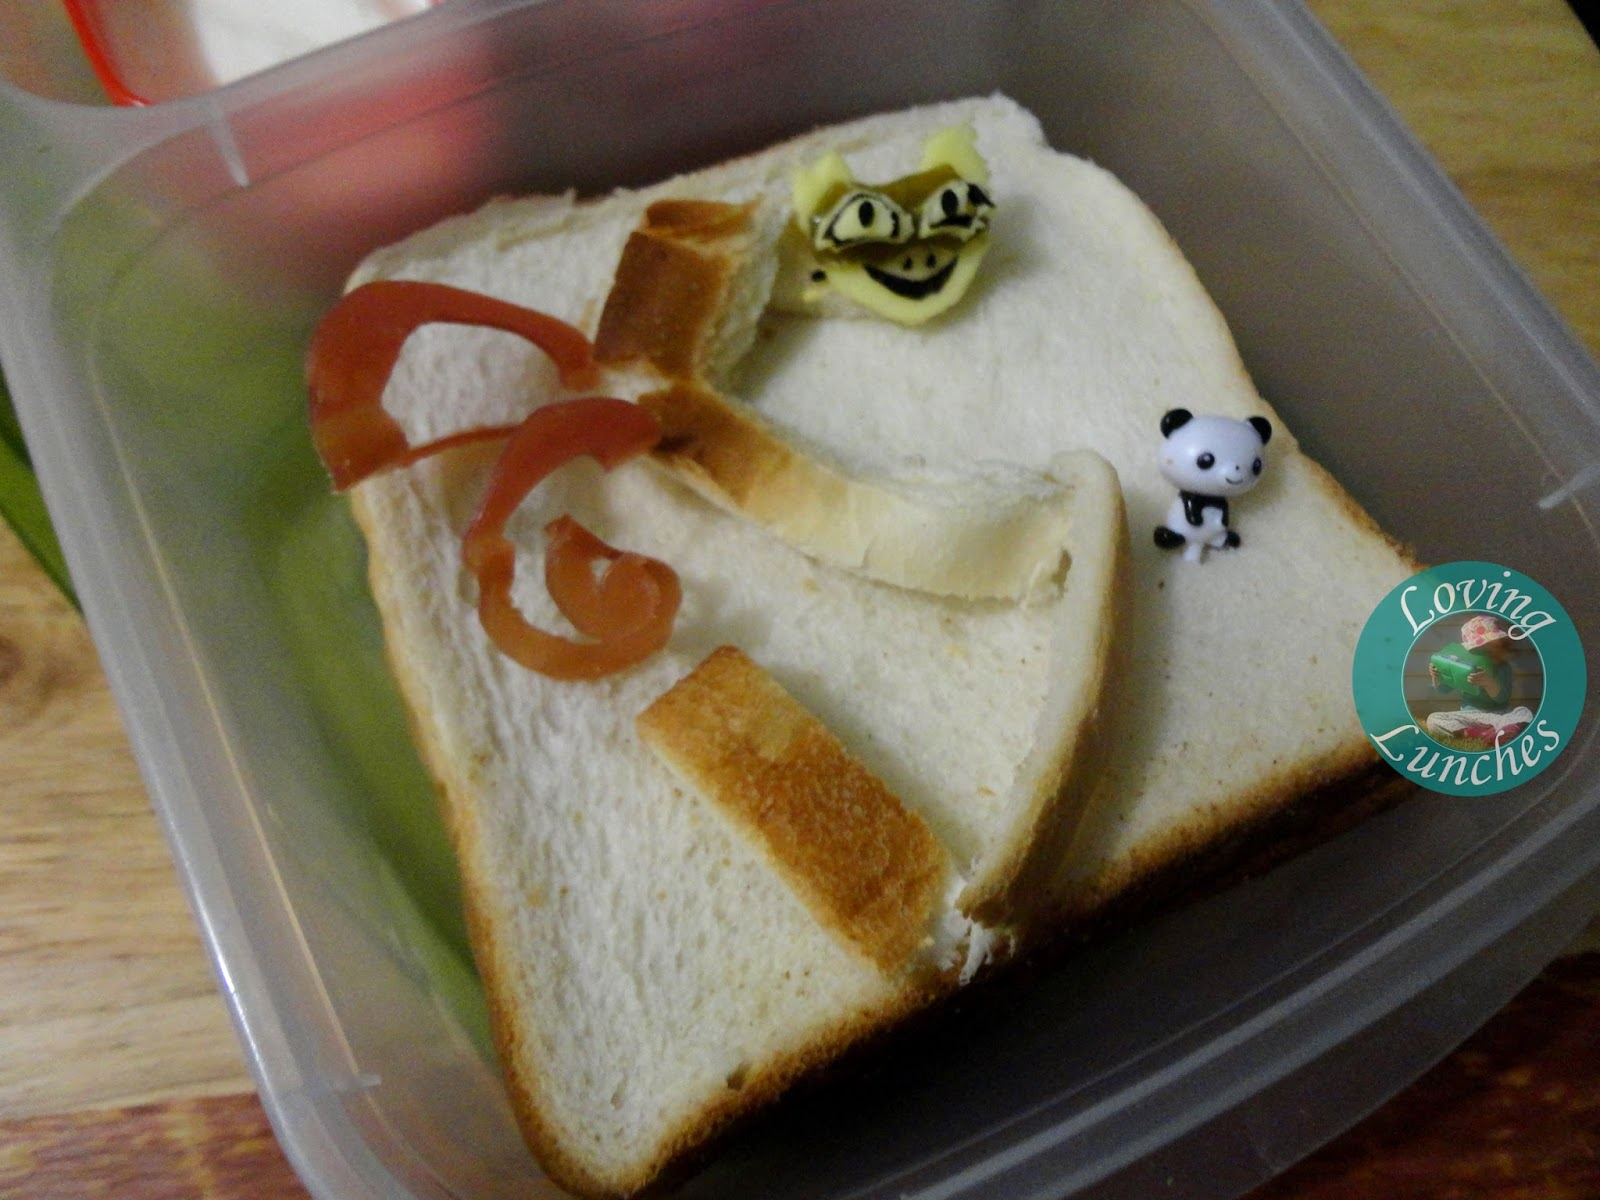 Loving Lunches: Kung Fu Panda Lunches of Awesomeness Po